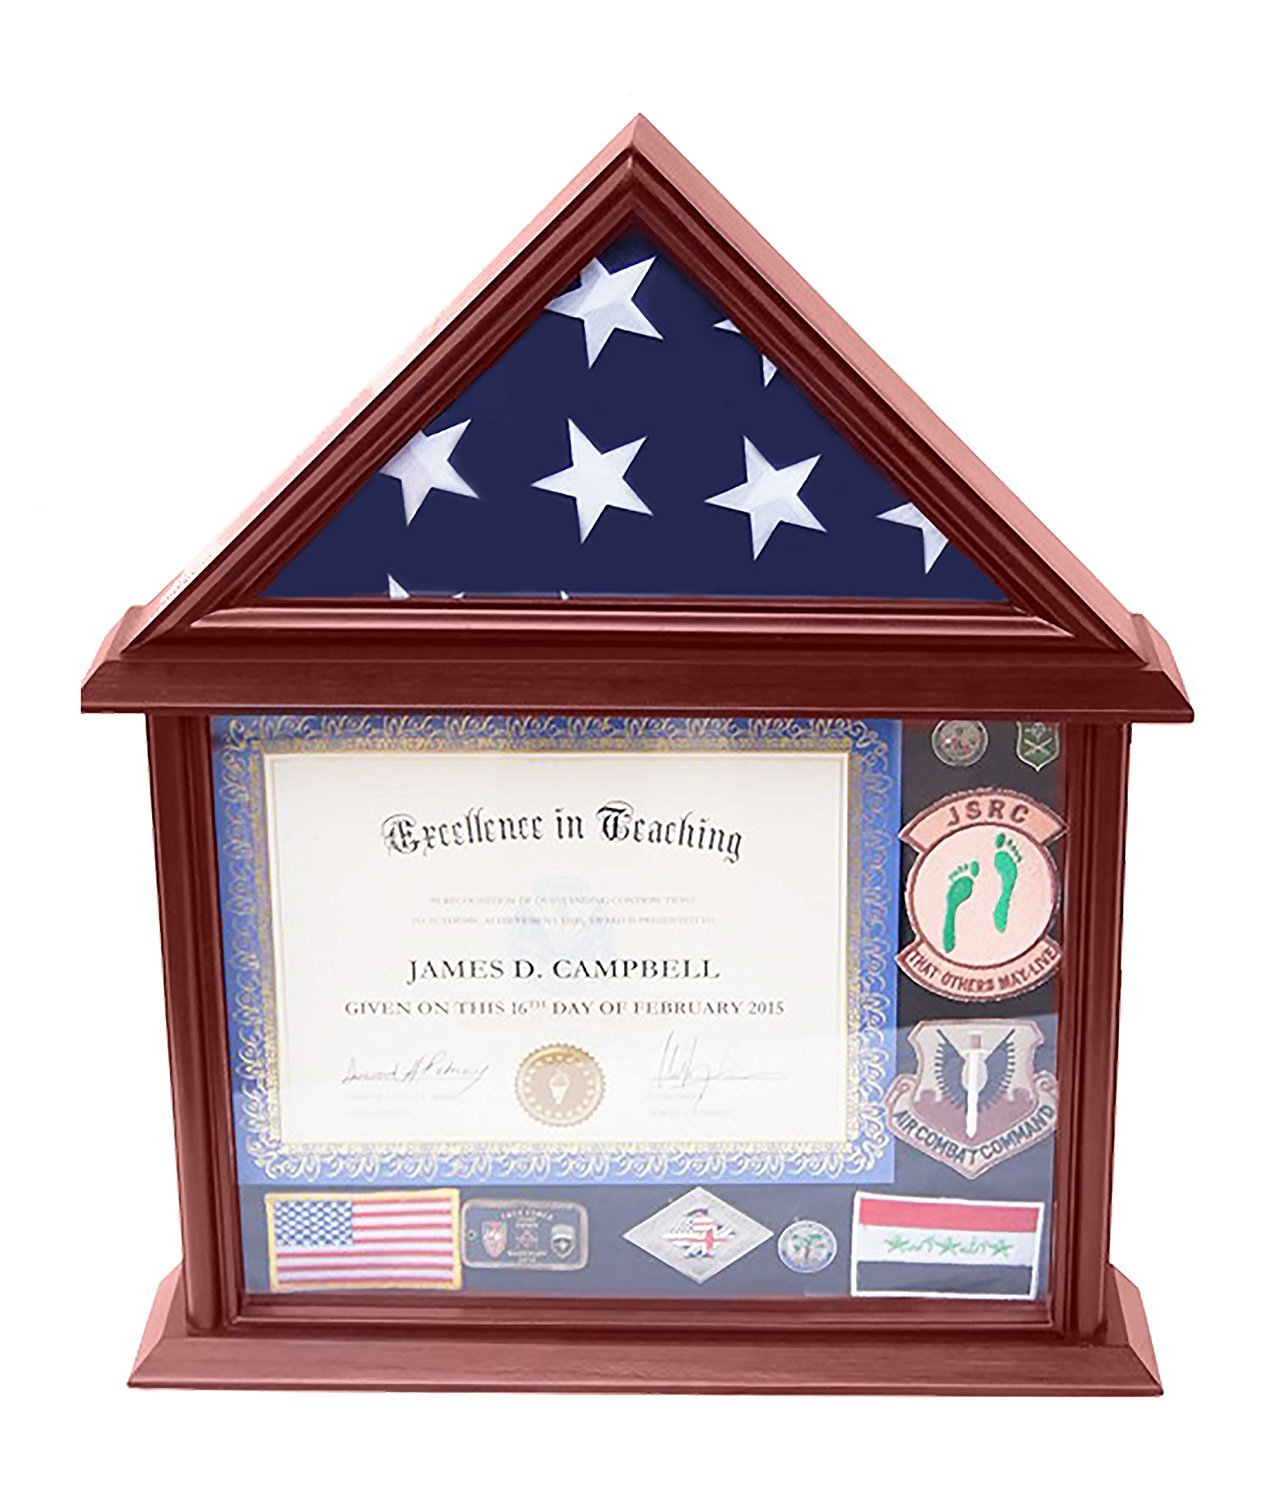 DECOMIL Document &Certificate Holder with 3x5 Flag Display Case, Mango Finish